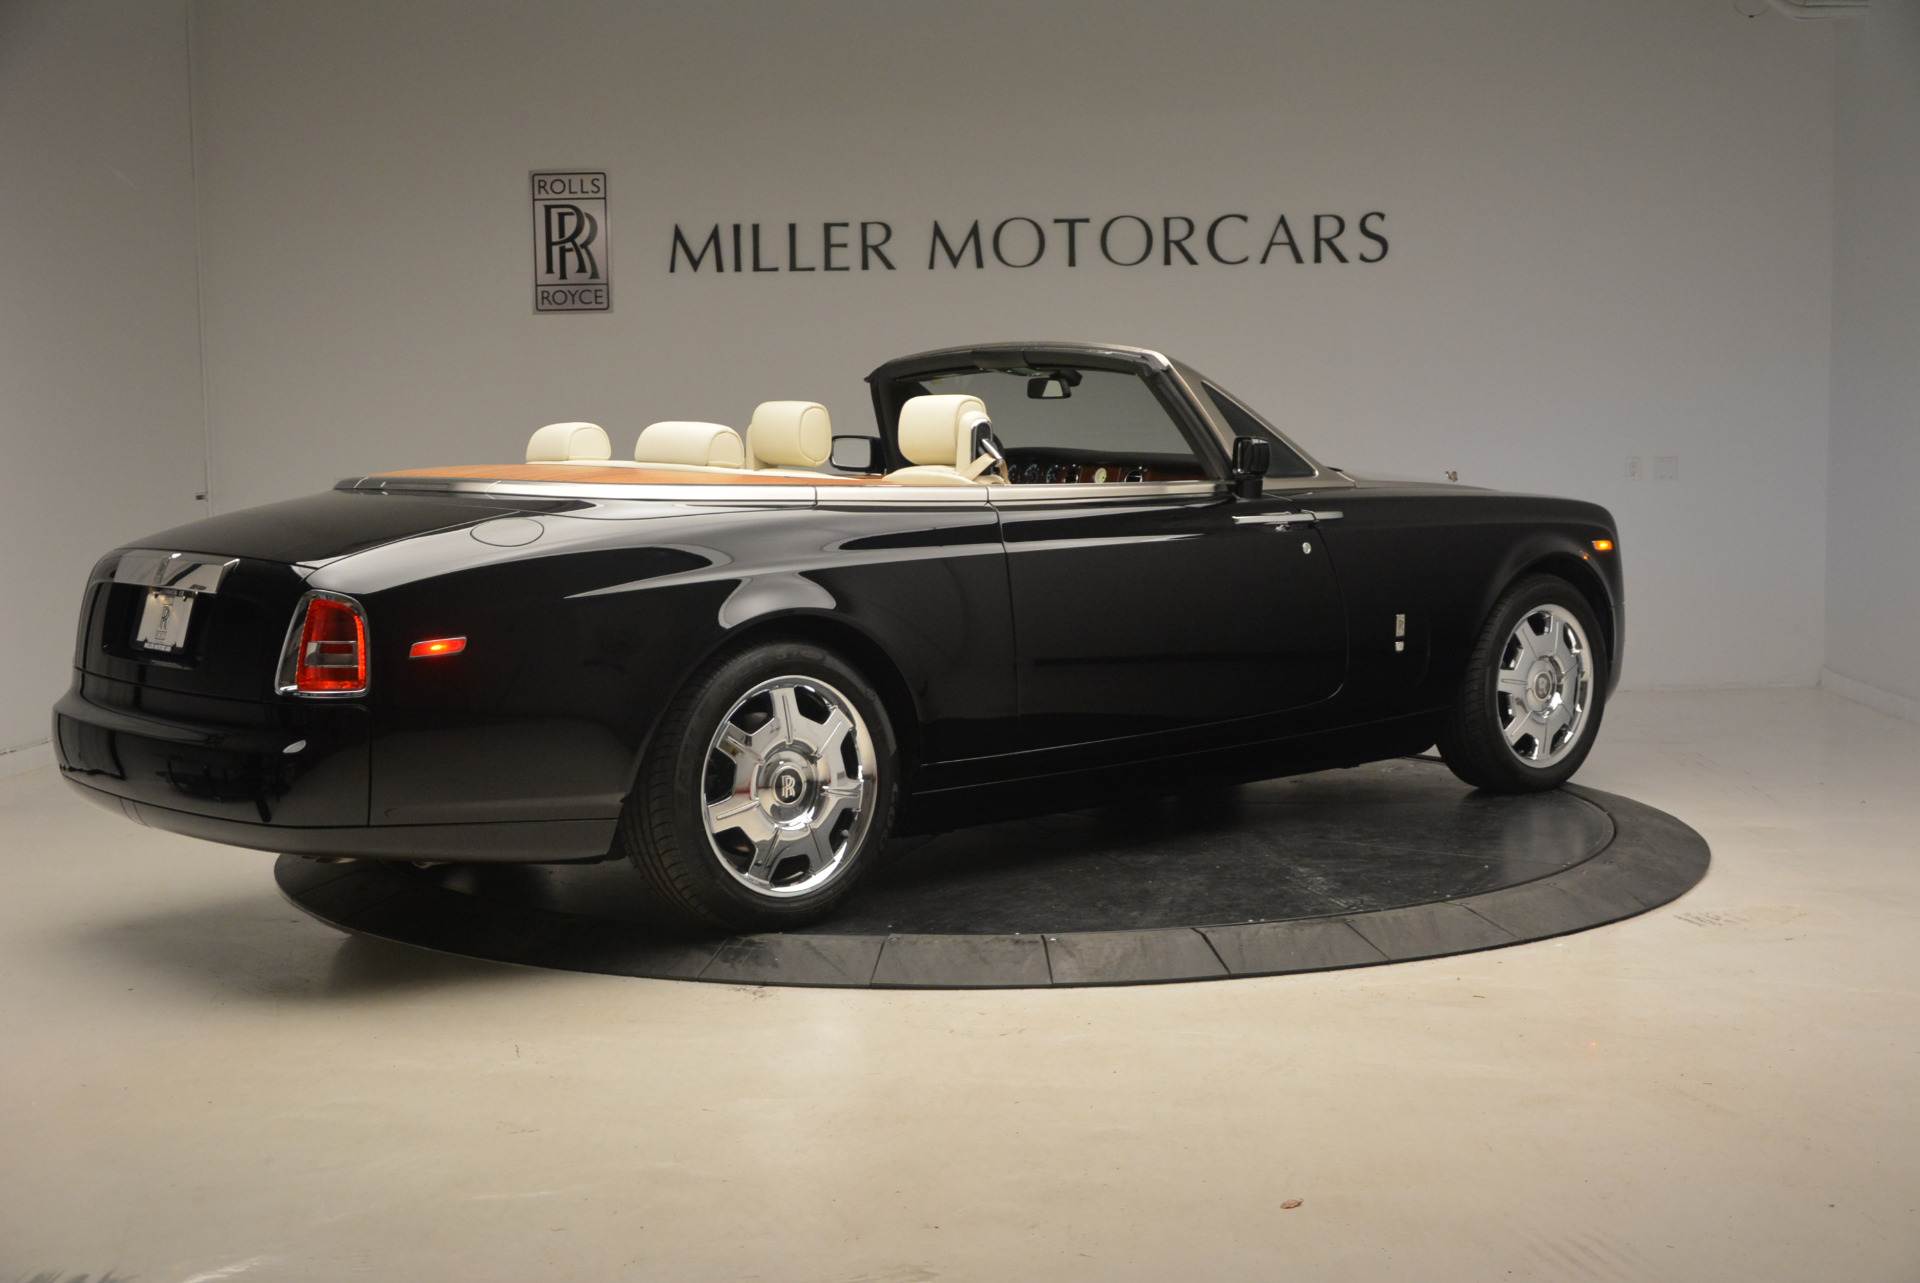 Used 2009 Rolls-Royce Phantom Drophead Coupe  For Sale In Westport, CT 1792_p9